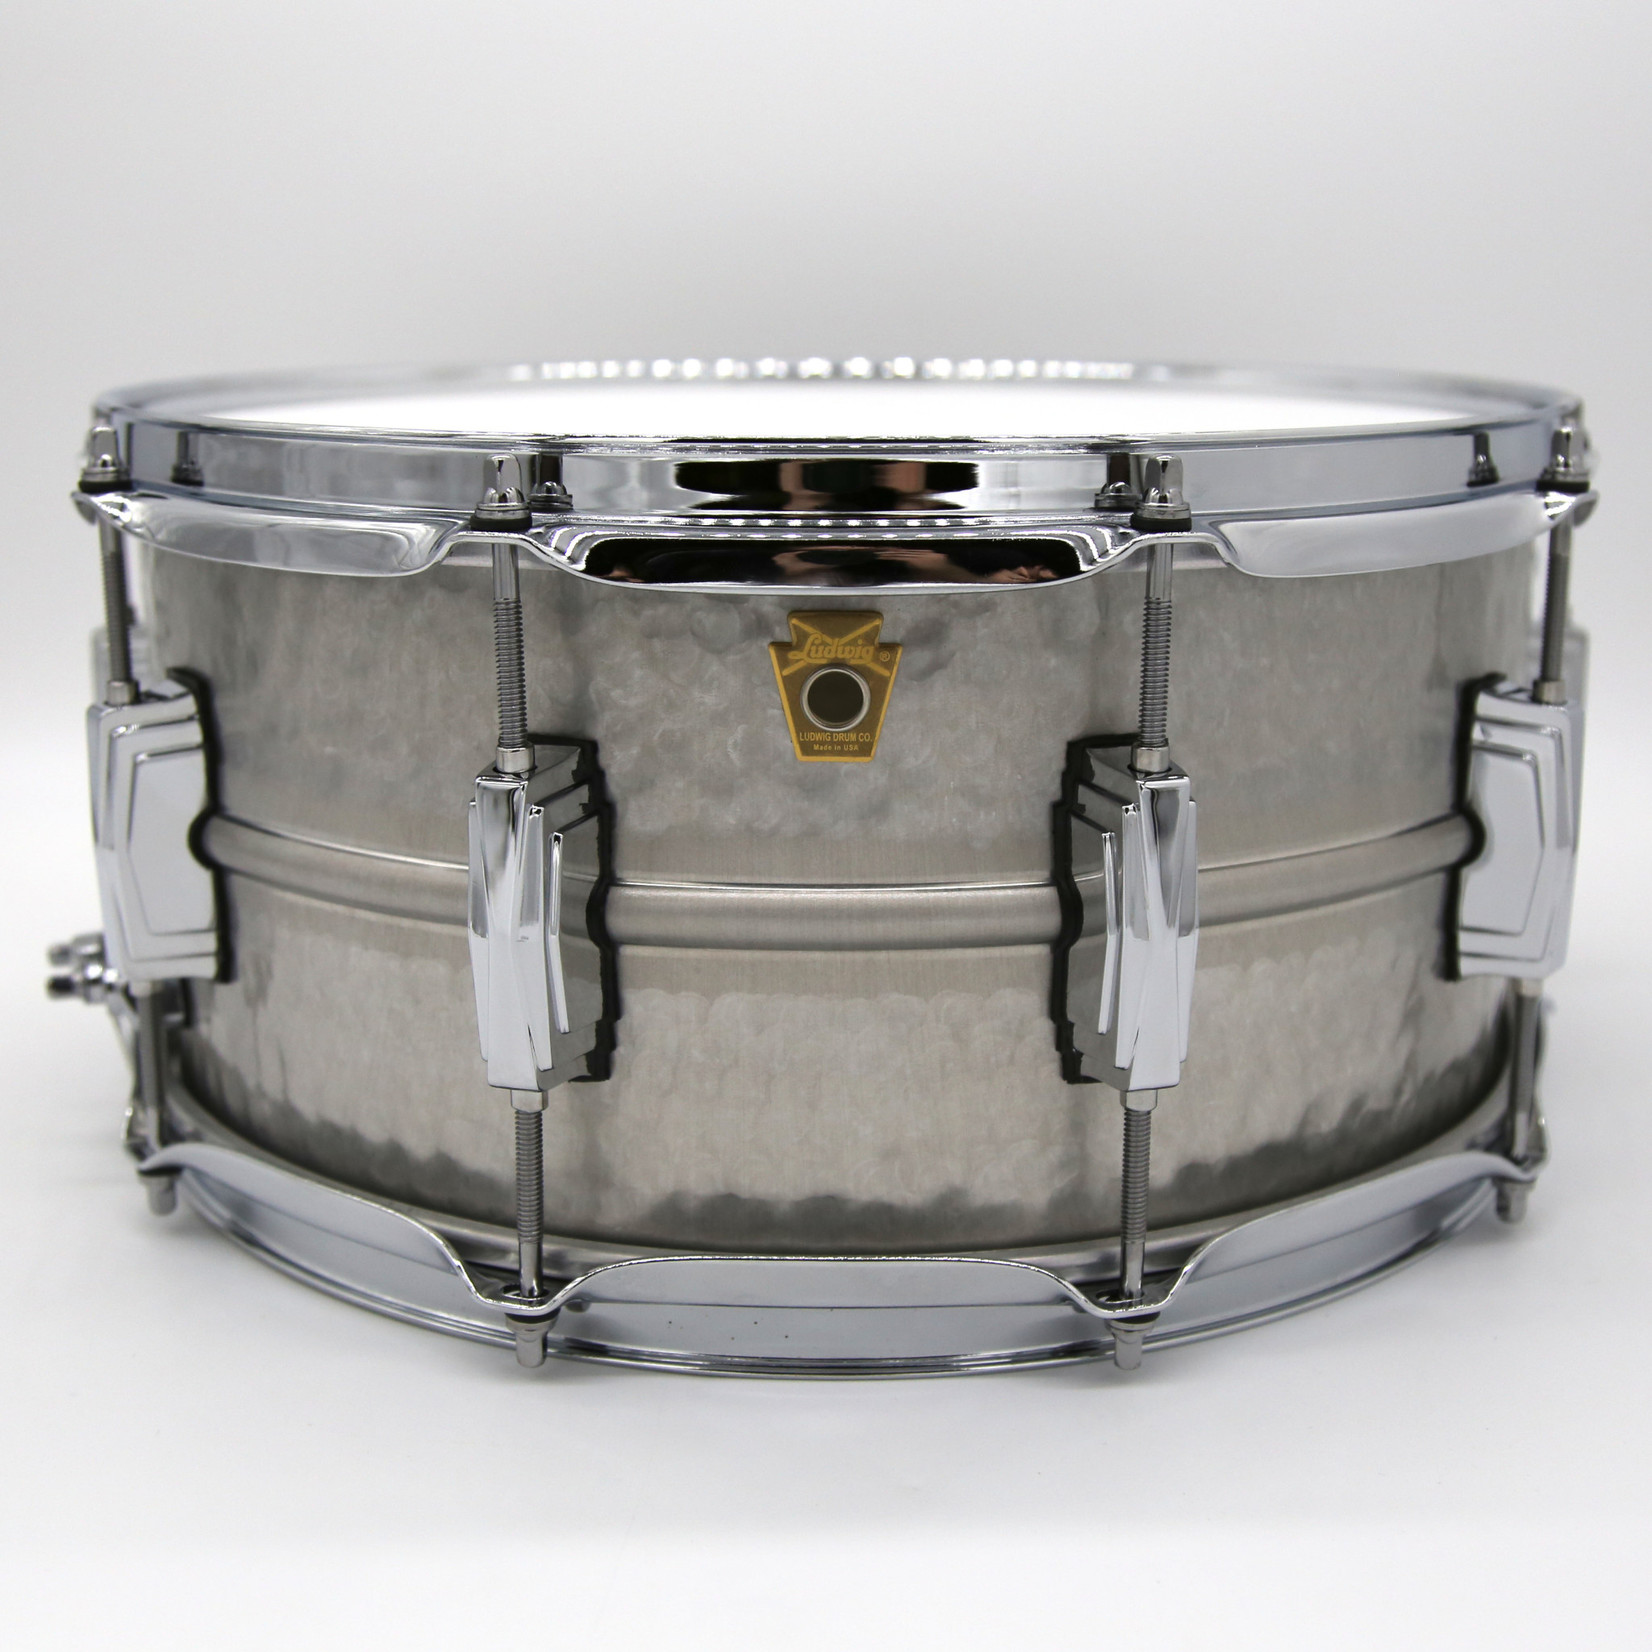 """Ludwig LUDWIG 6.5X14"""" ACROPHONIC HAMMERED SNARE DRUM LA405K"""